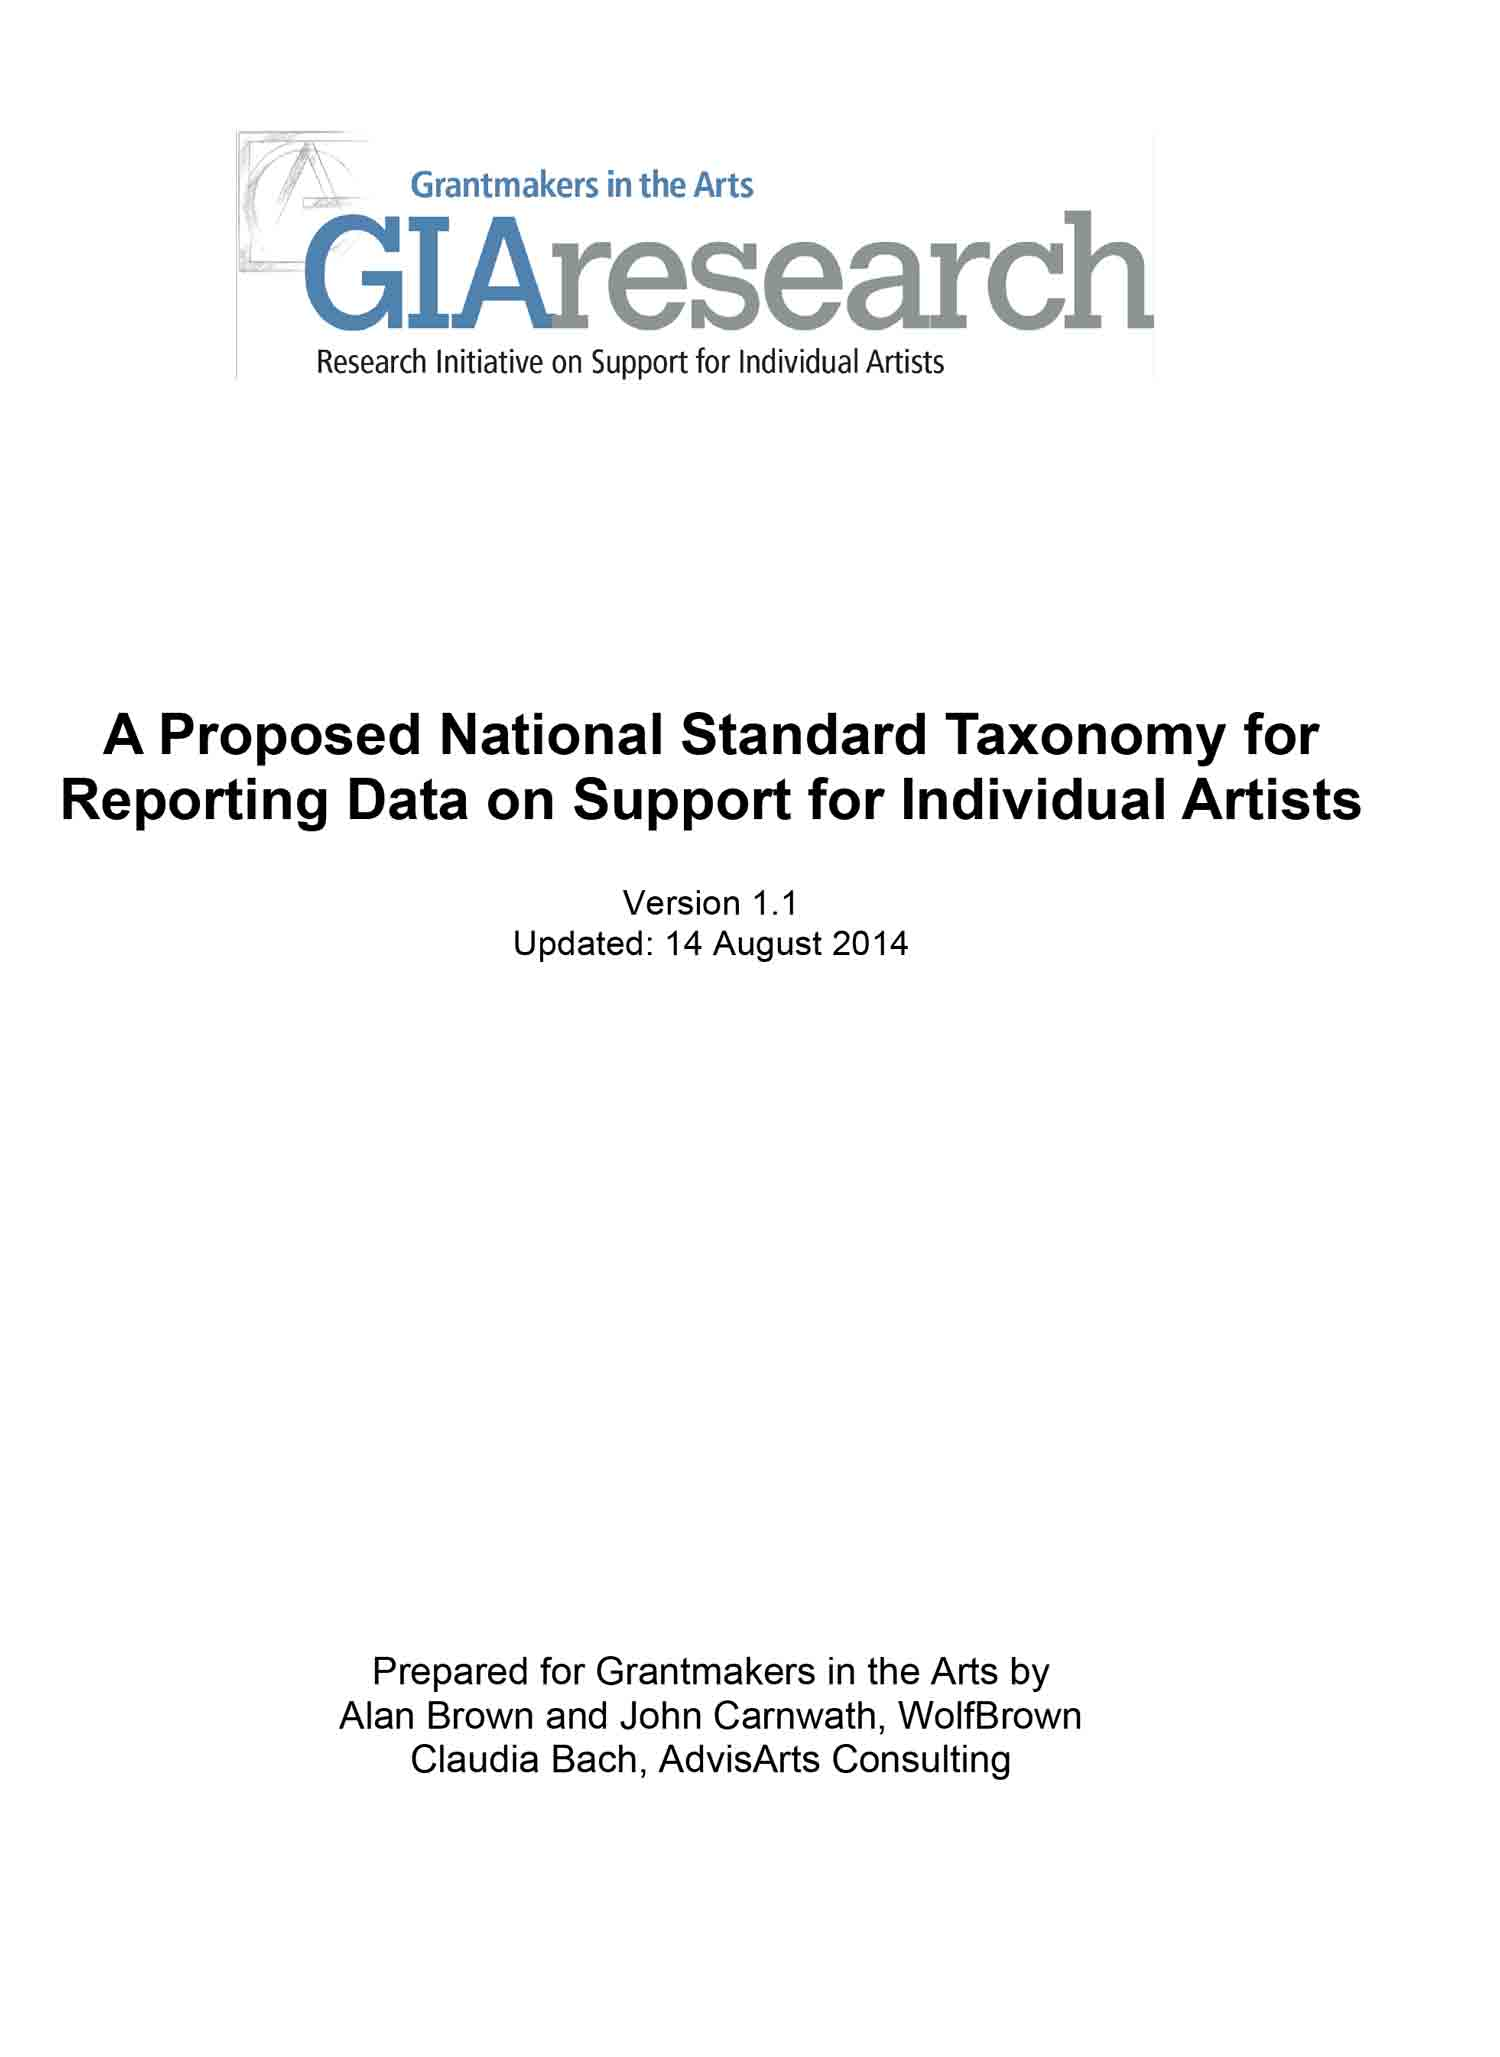 A Proposed National Standard Taxonomy for Reporting Data on Support for Individual Artists